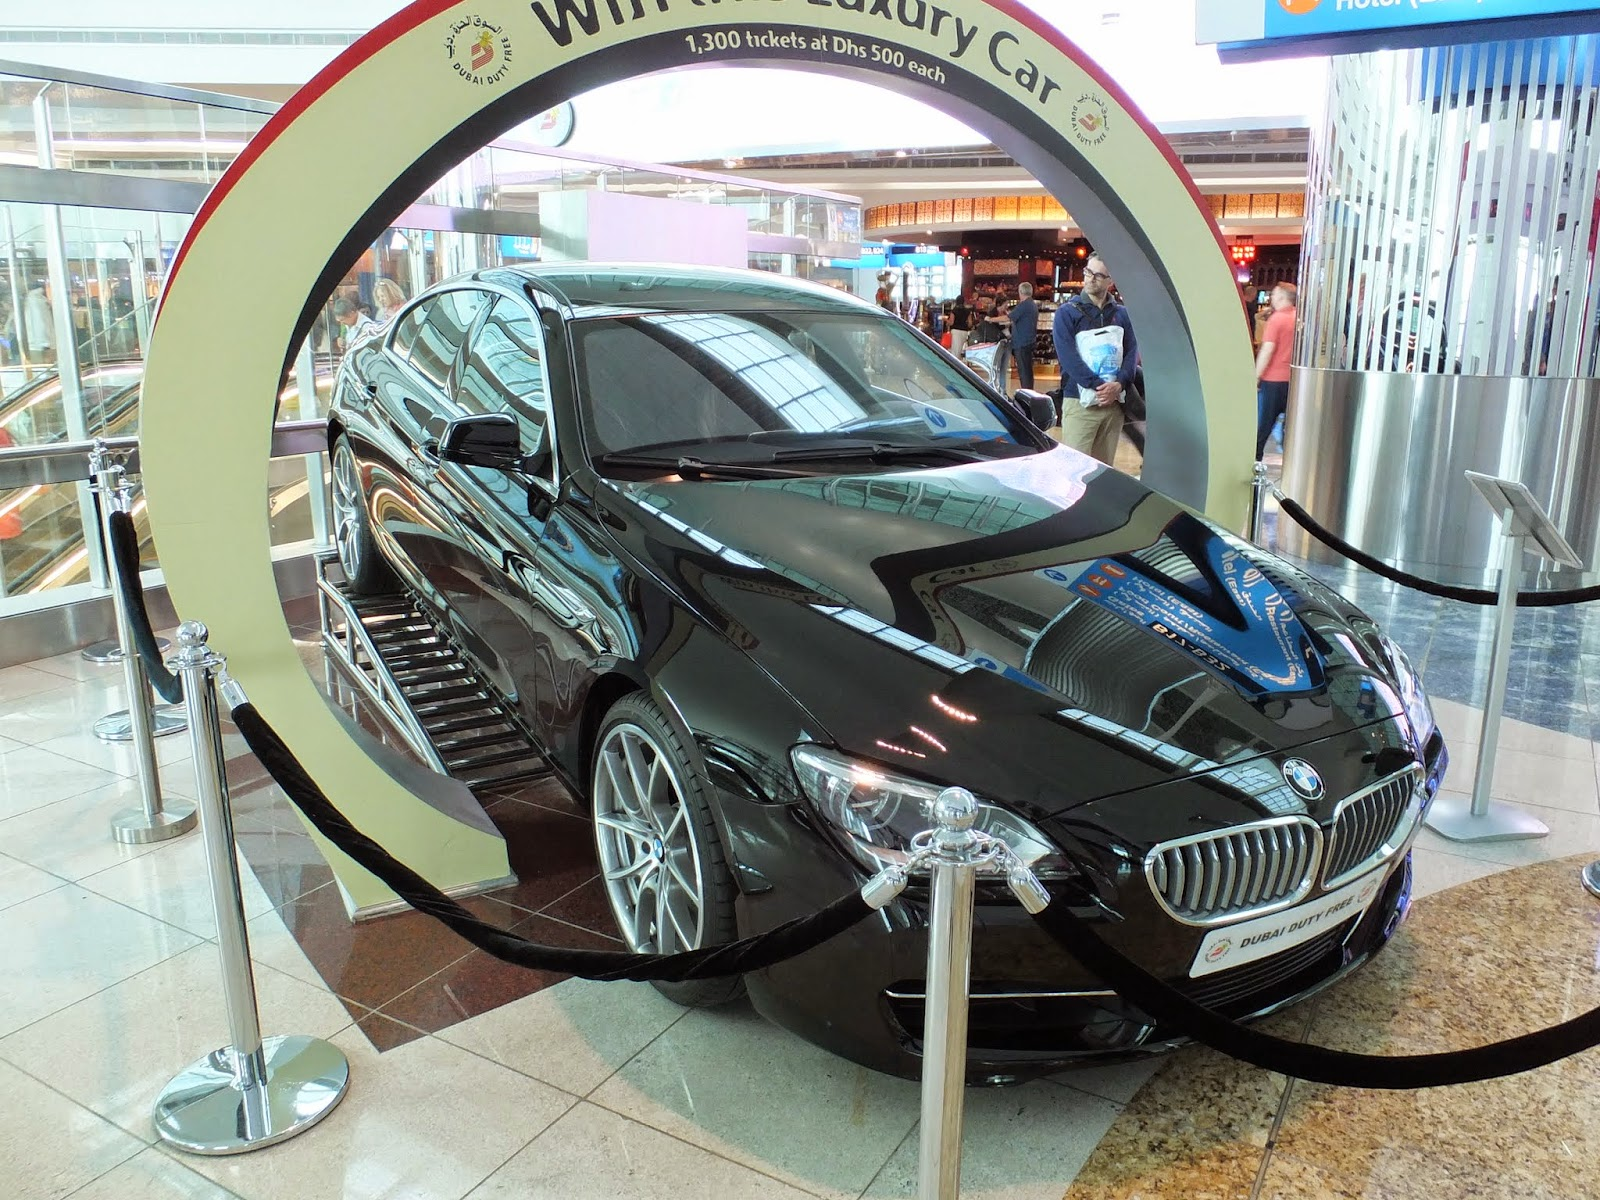 dubai-airport ドバイ国際空港3 with BMW